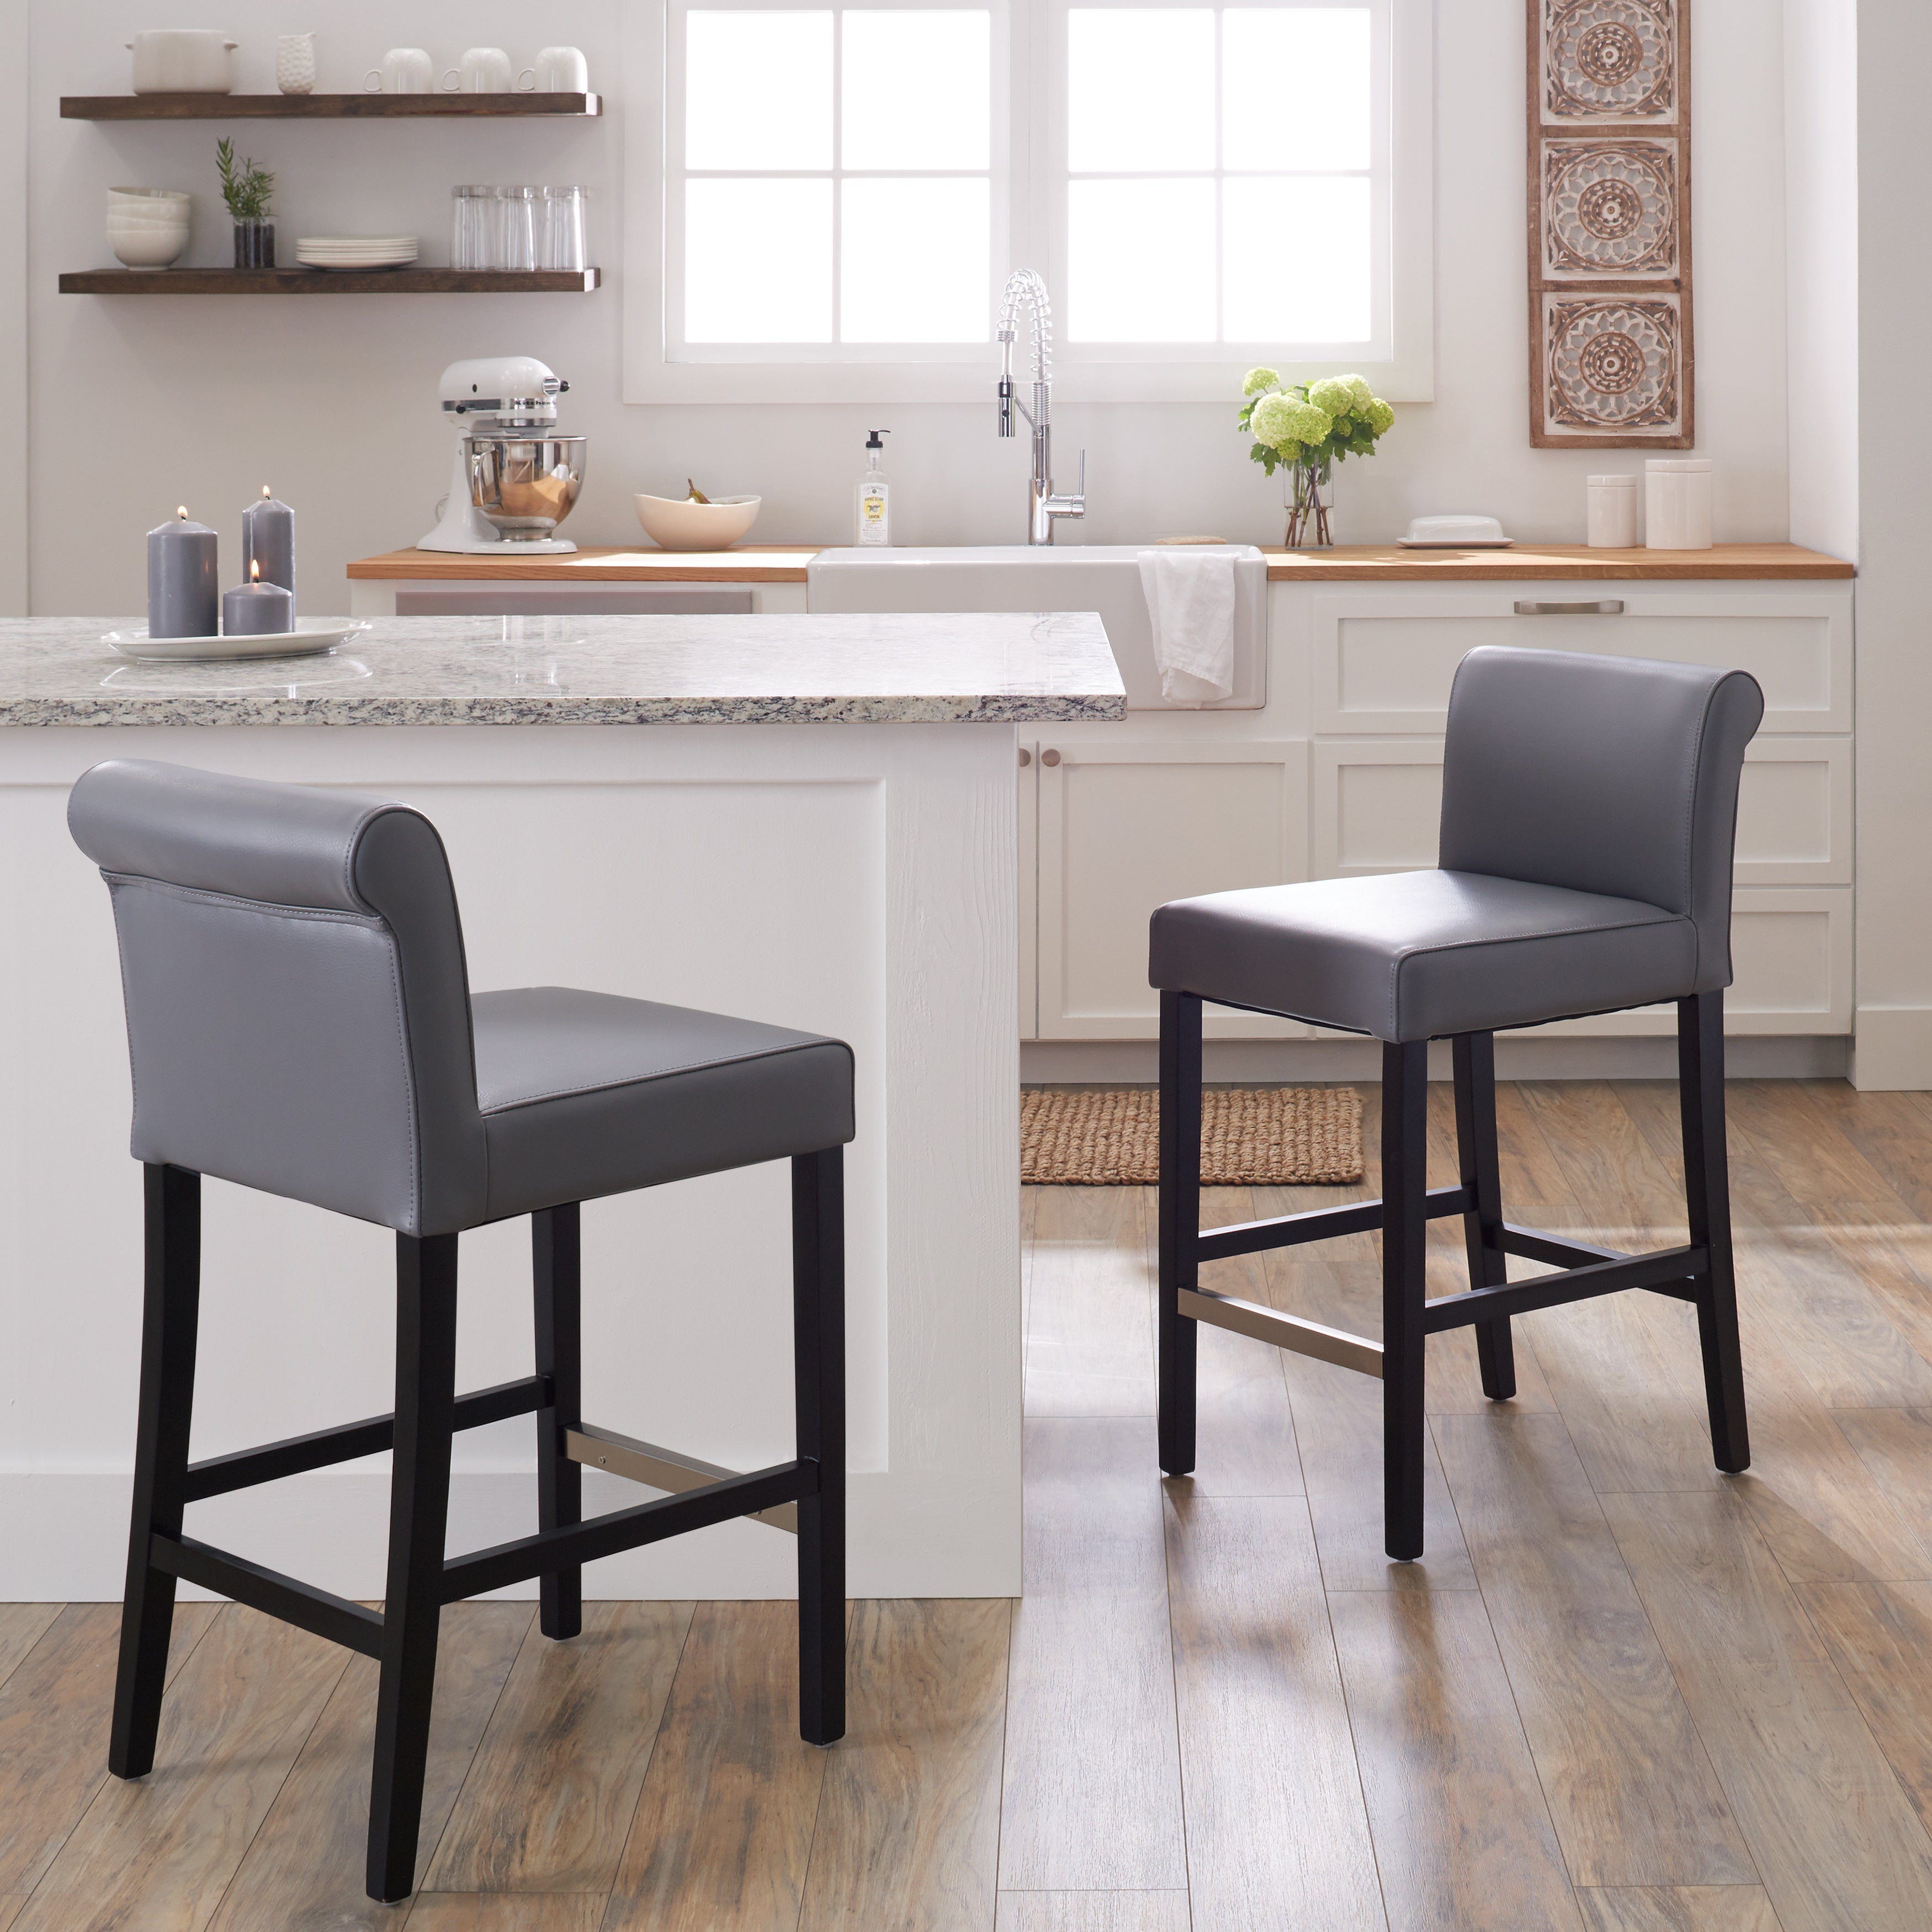 gray counter stools. Shop Jasper Laine Cosmopolitan Grey Leather Counter Stool (Set Of 2) - On Sale Free Shipping Today Overstock.com 6649610 Gray Stools